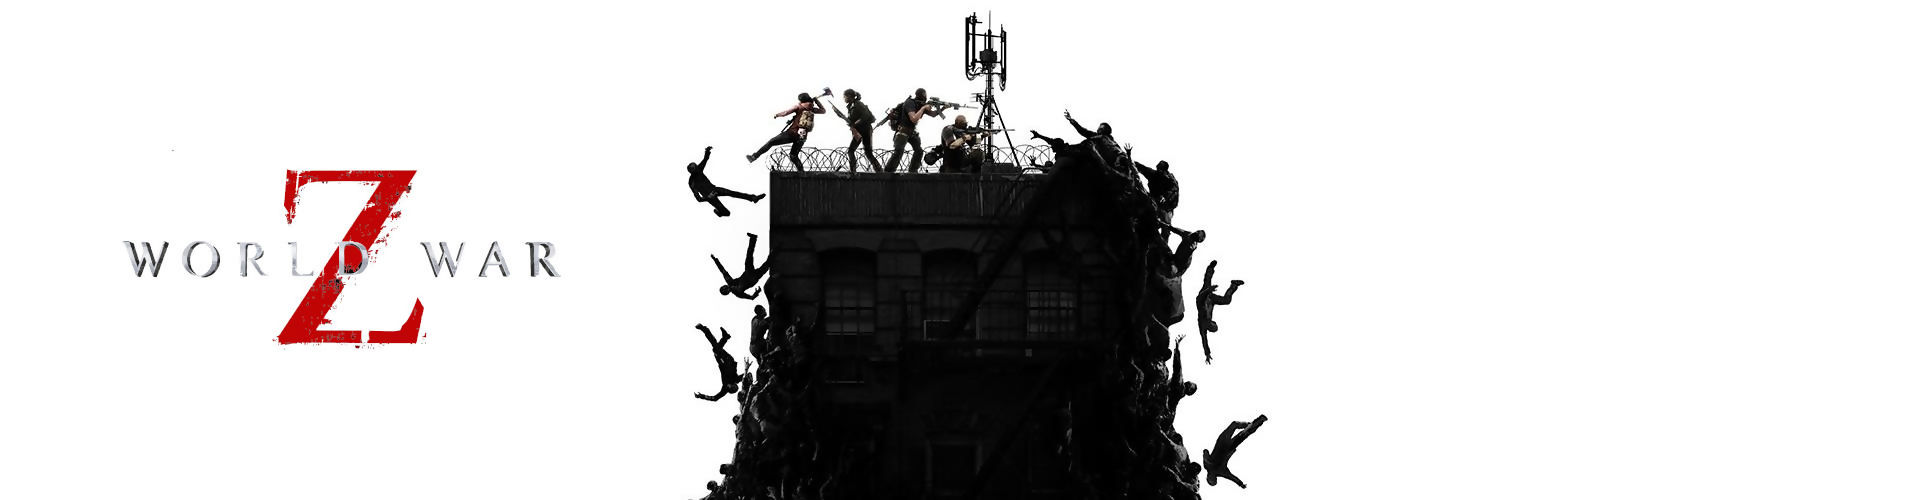 World War Z - All the reviews and the European average score